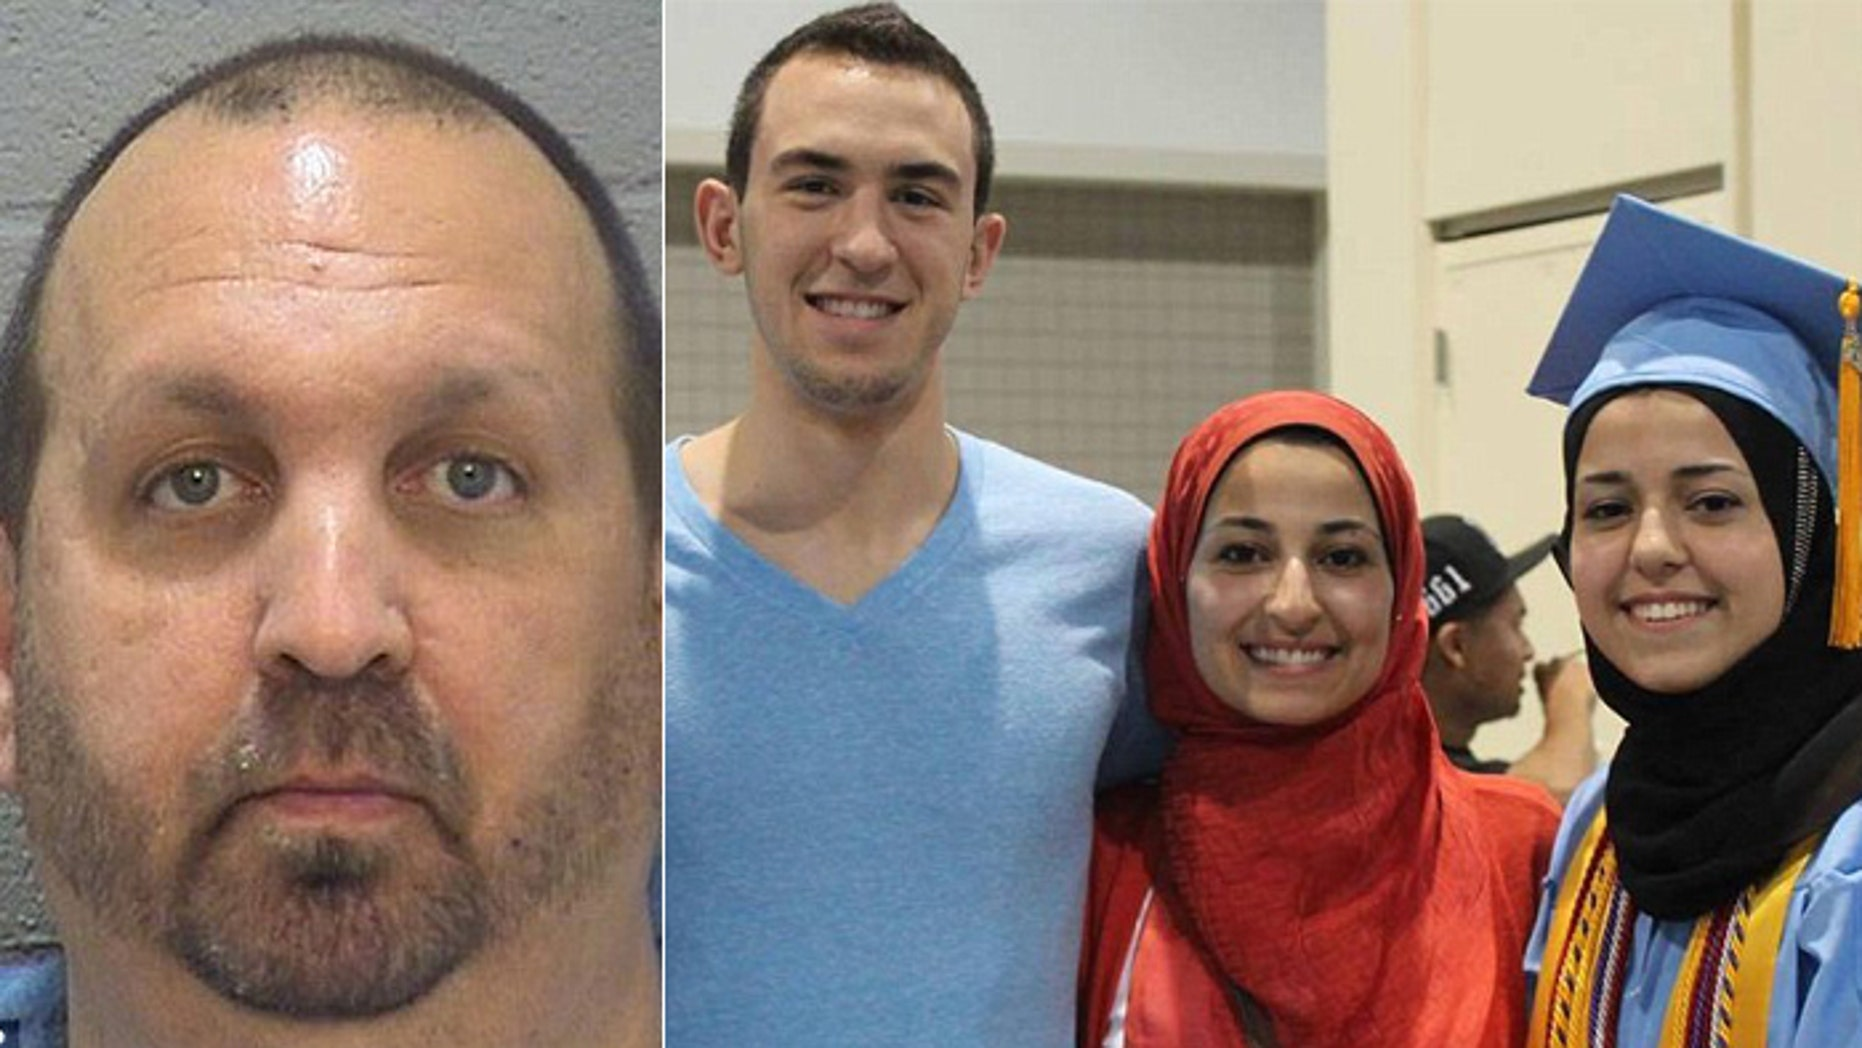 Craig Stephen Hicks, (l.), is suspected of gunning down neighbors Deah Shaddy Barakat; his wife, Yusor Abu-Salha, 21; and her sister, shown left to right in photo on right.